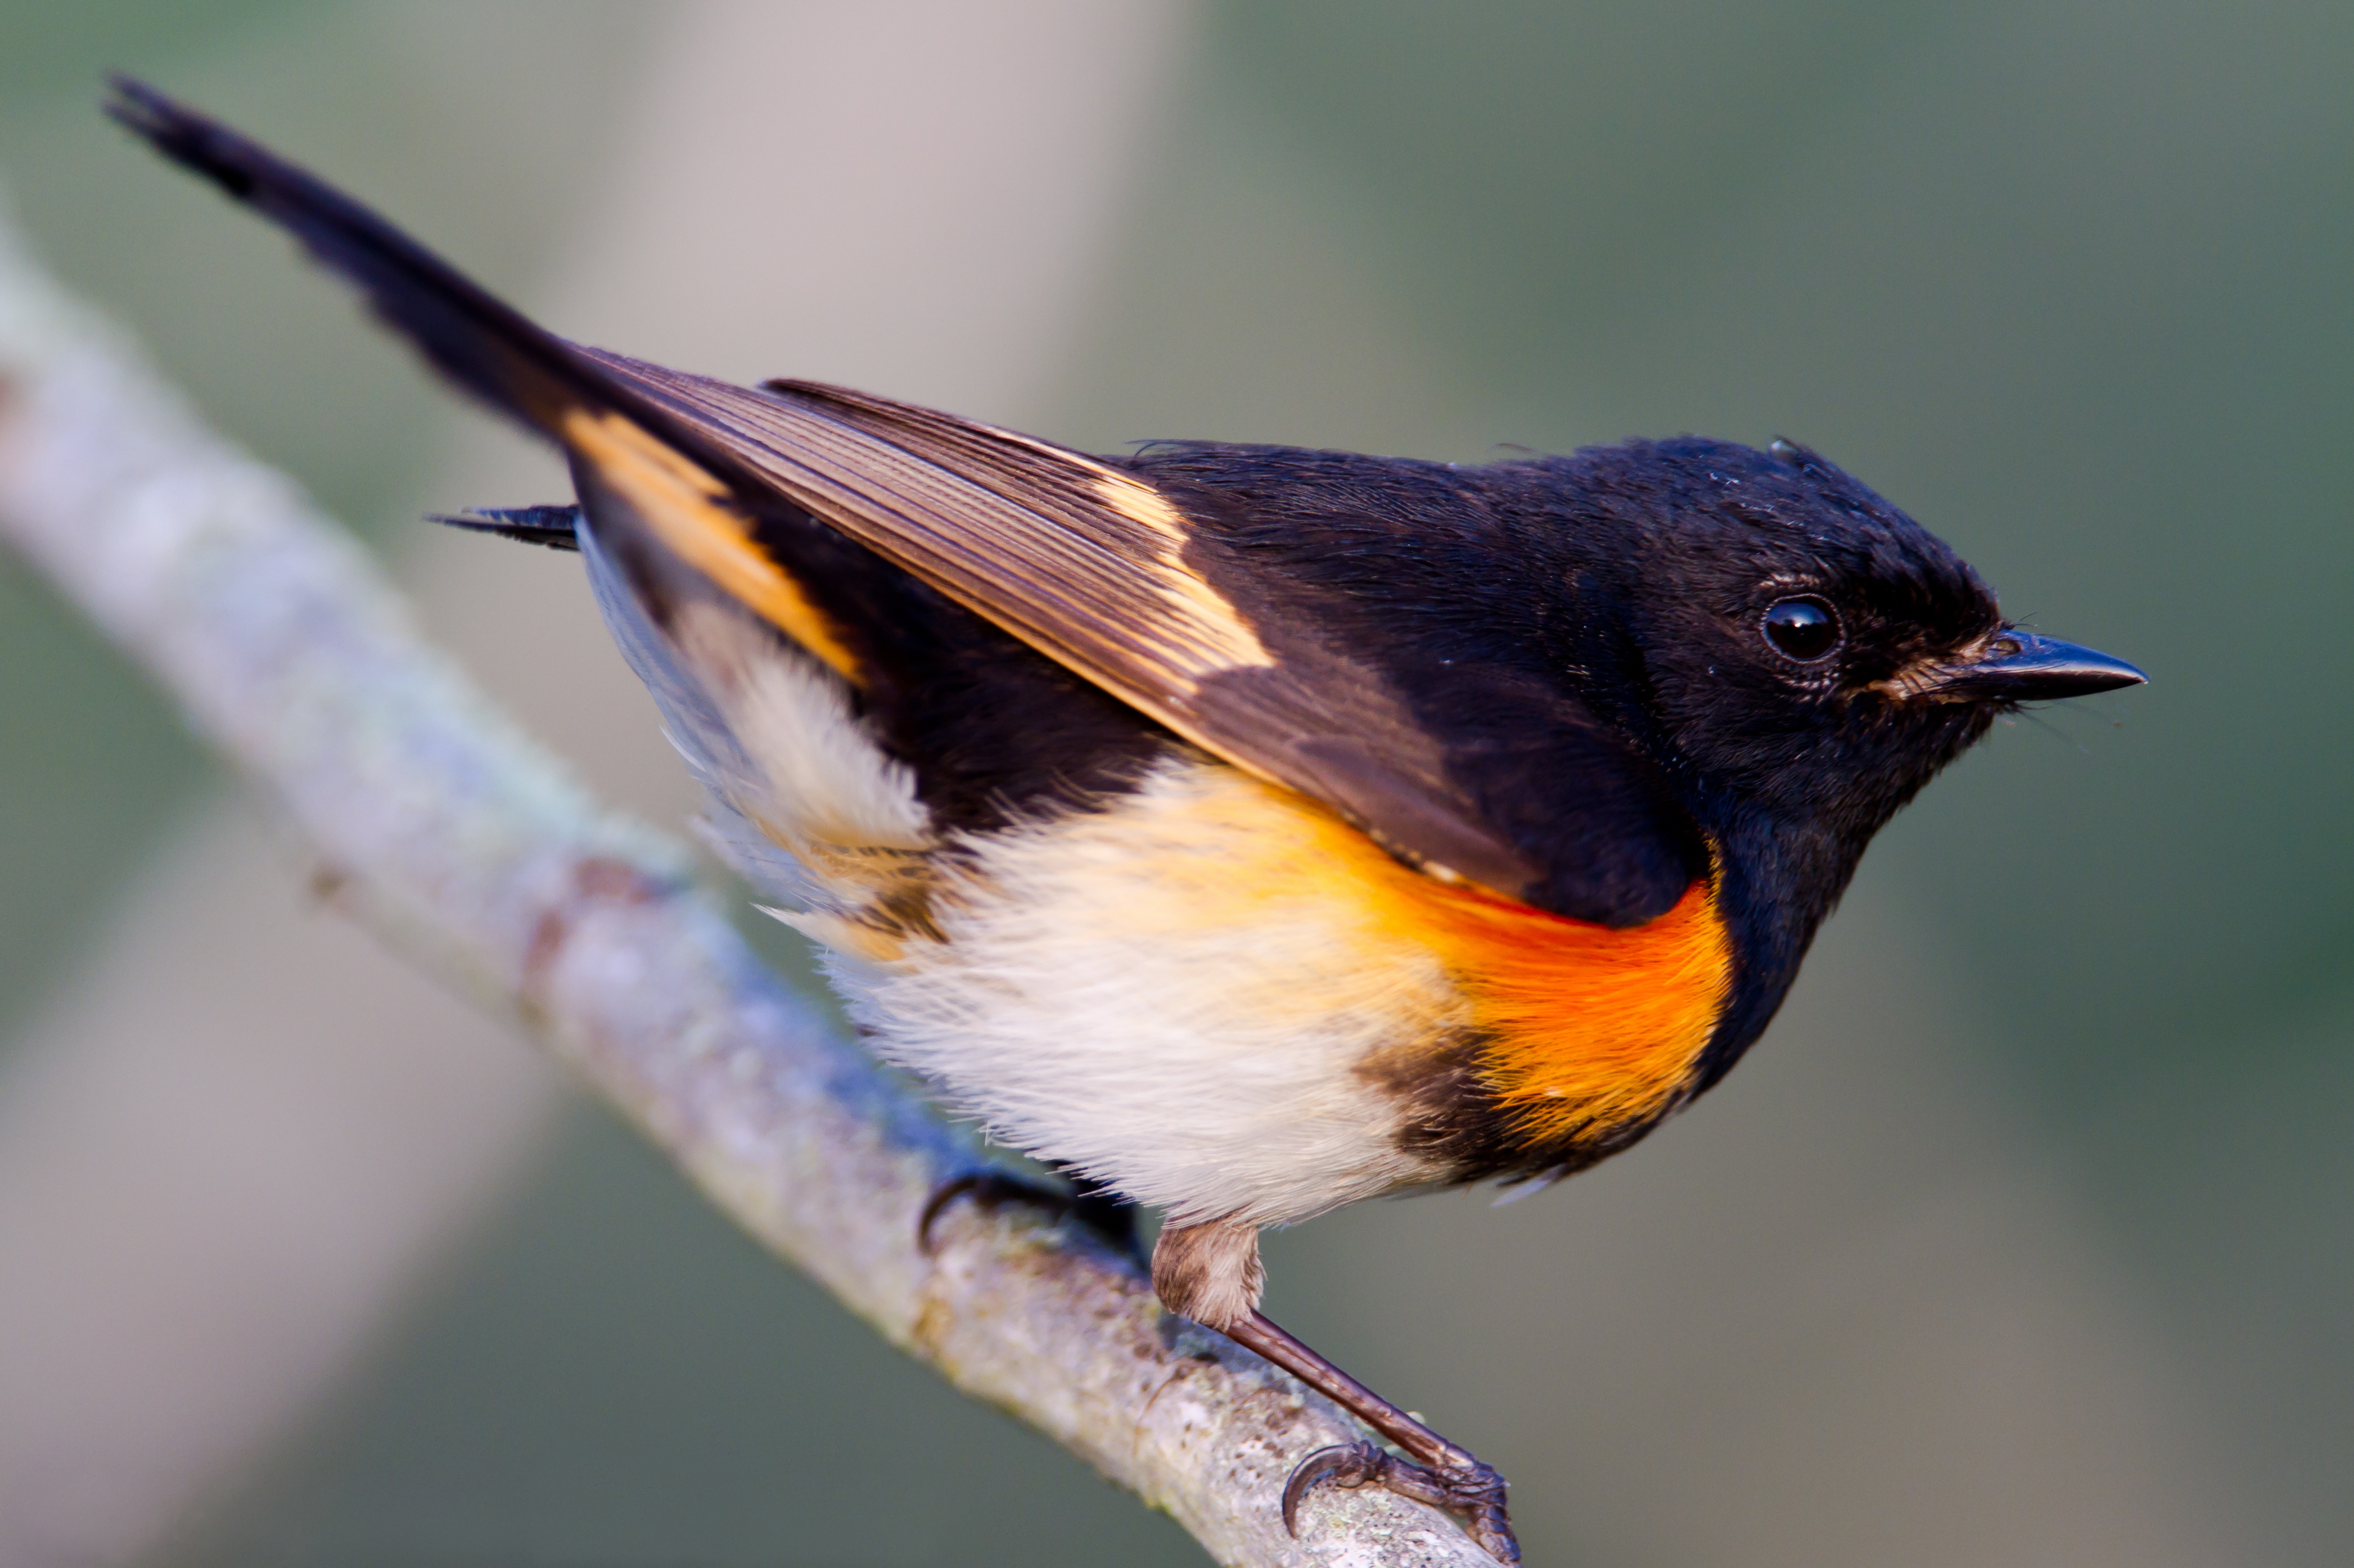 Bird with black head and orange chest perched observantly on a tree branch